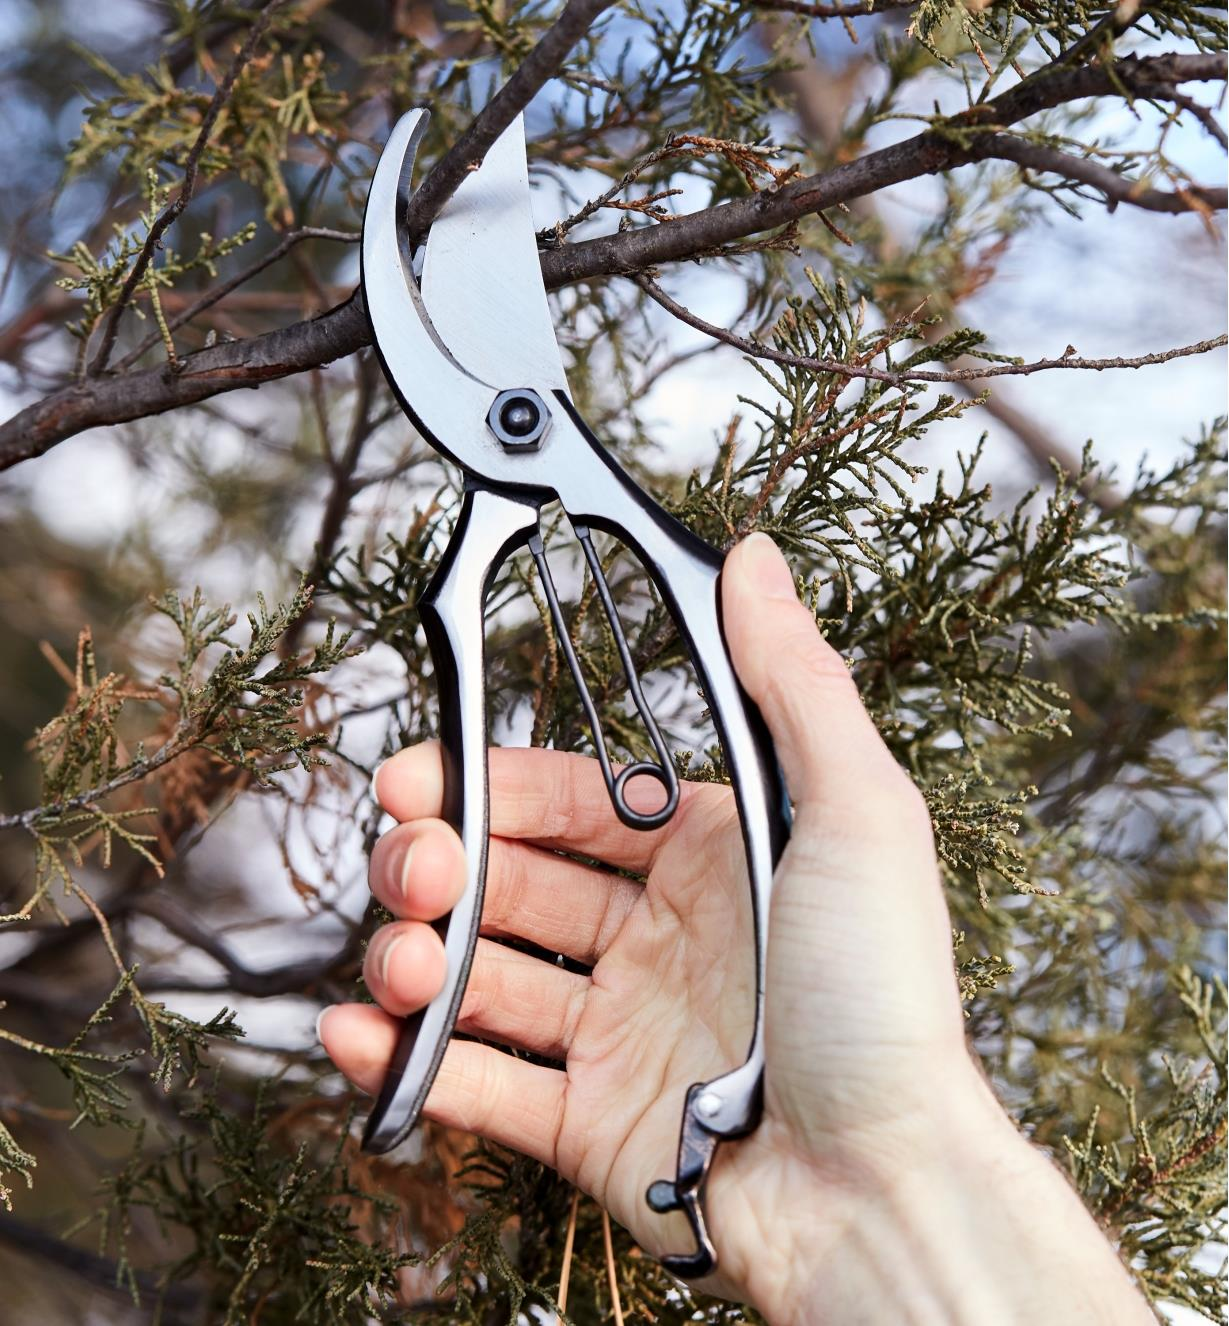 Using the all-steel bypass pruner to clip twigs off a tree branch